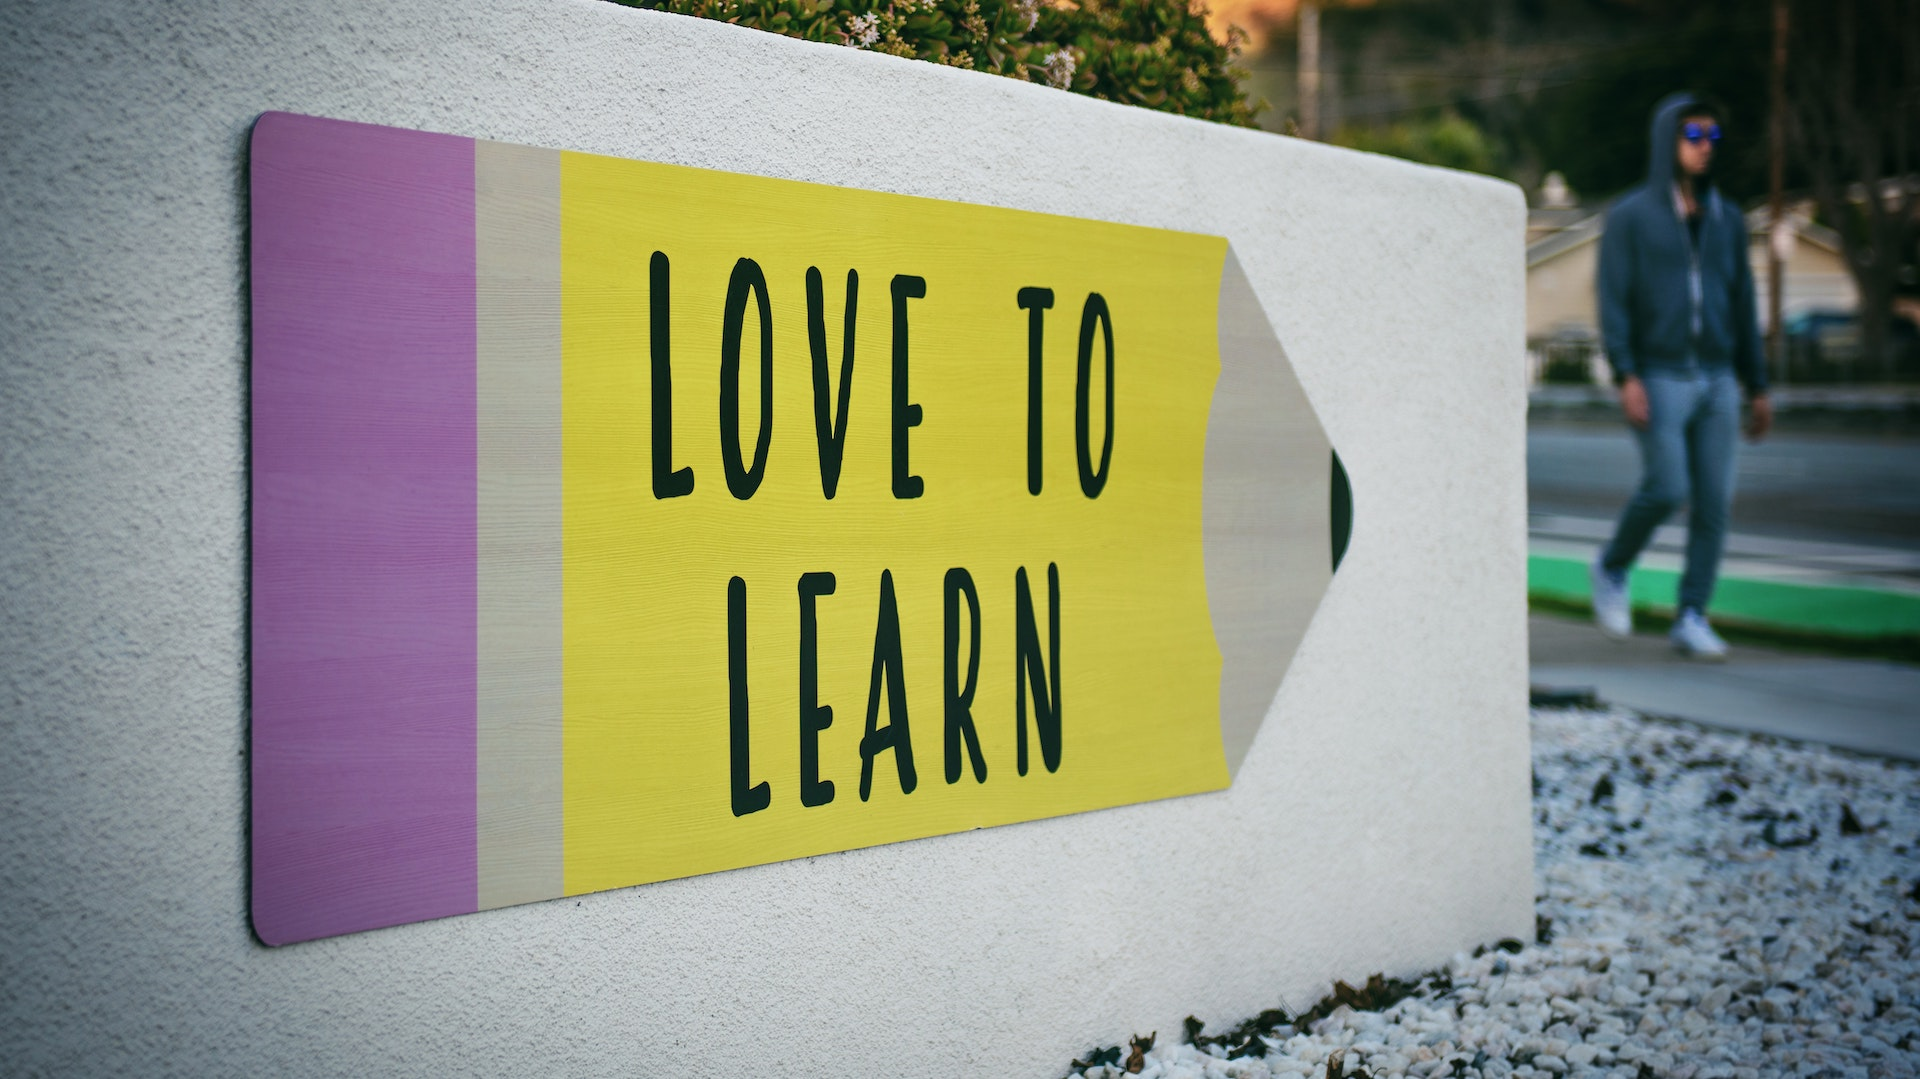 A cartoon pencil that's yellow with a pink eraser. Text on pencil: Love to learn.